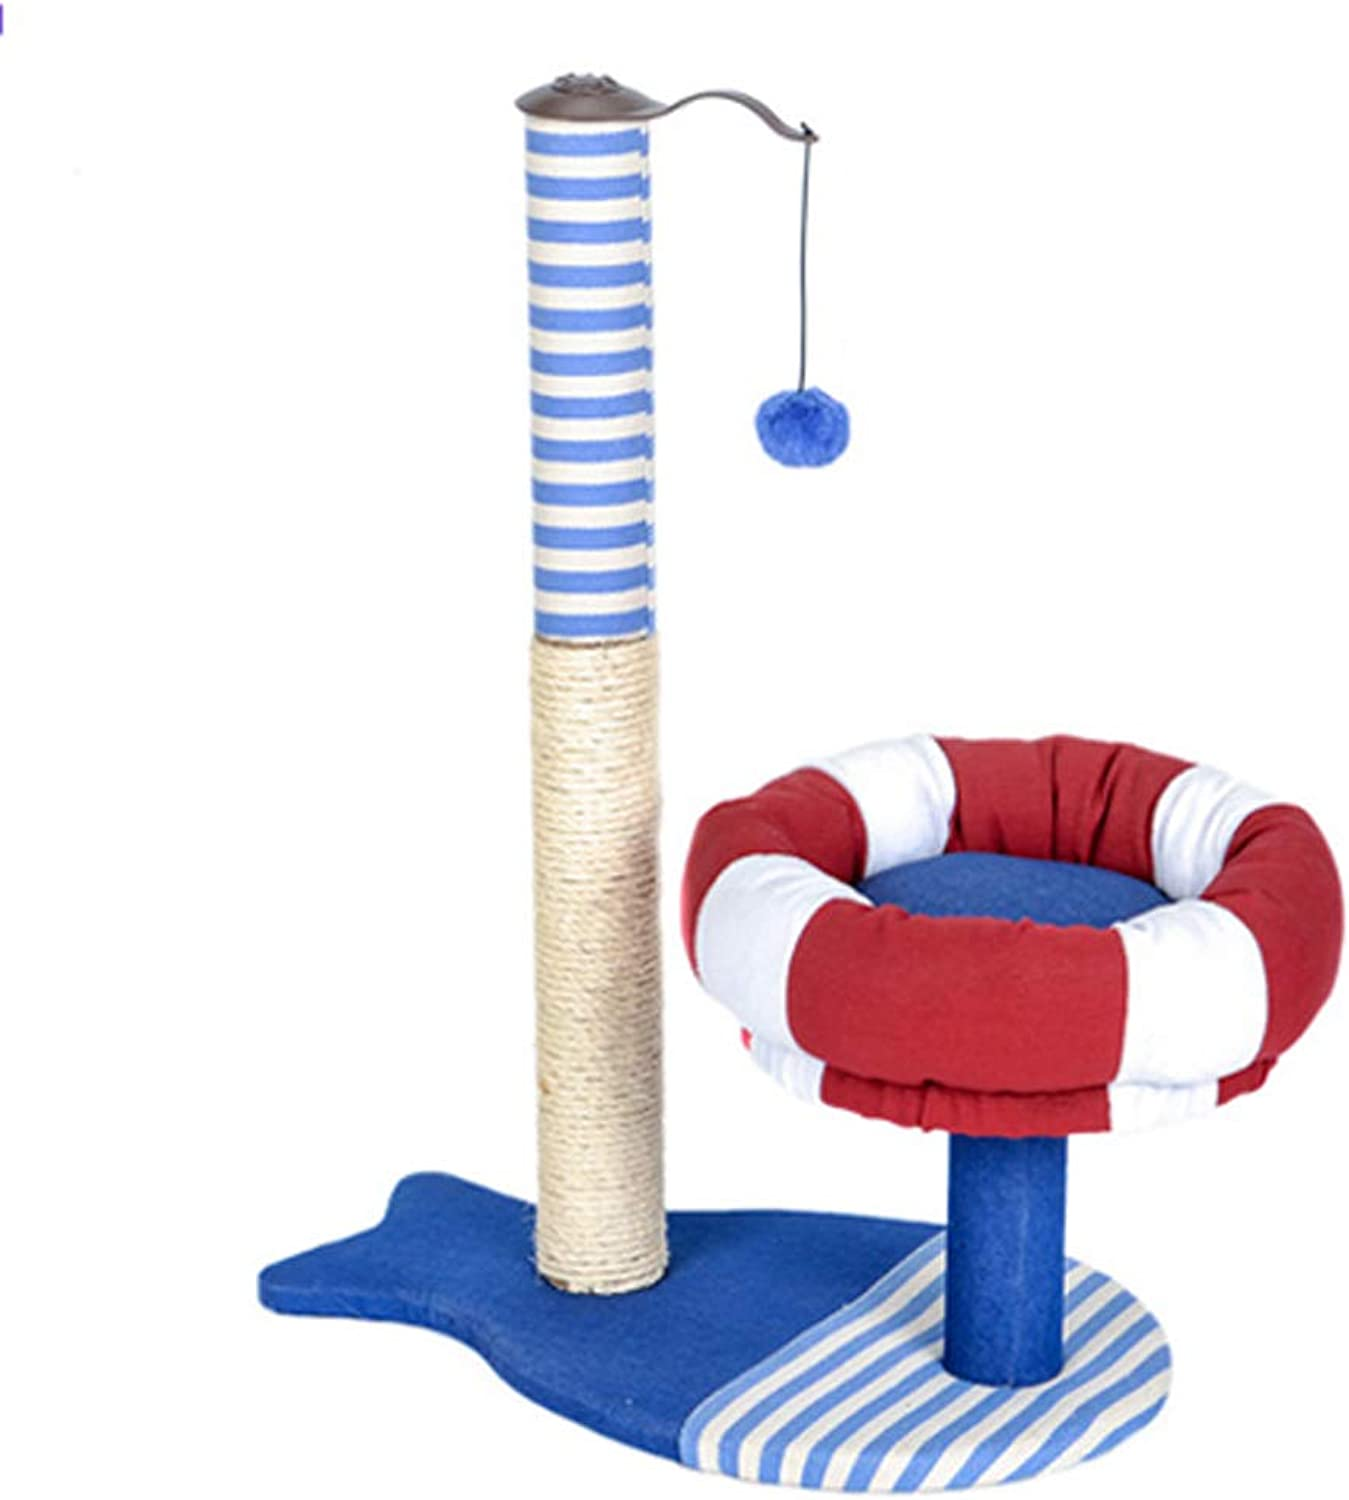 Pet nest pirate ship cat climbing frame Cat toy cat jumping table cat tree cat scratch board with watchtower sisal rope cat toy 54  34.5  75cm